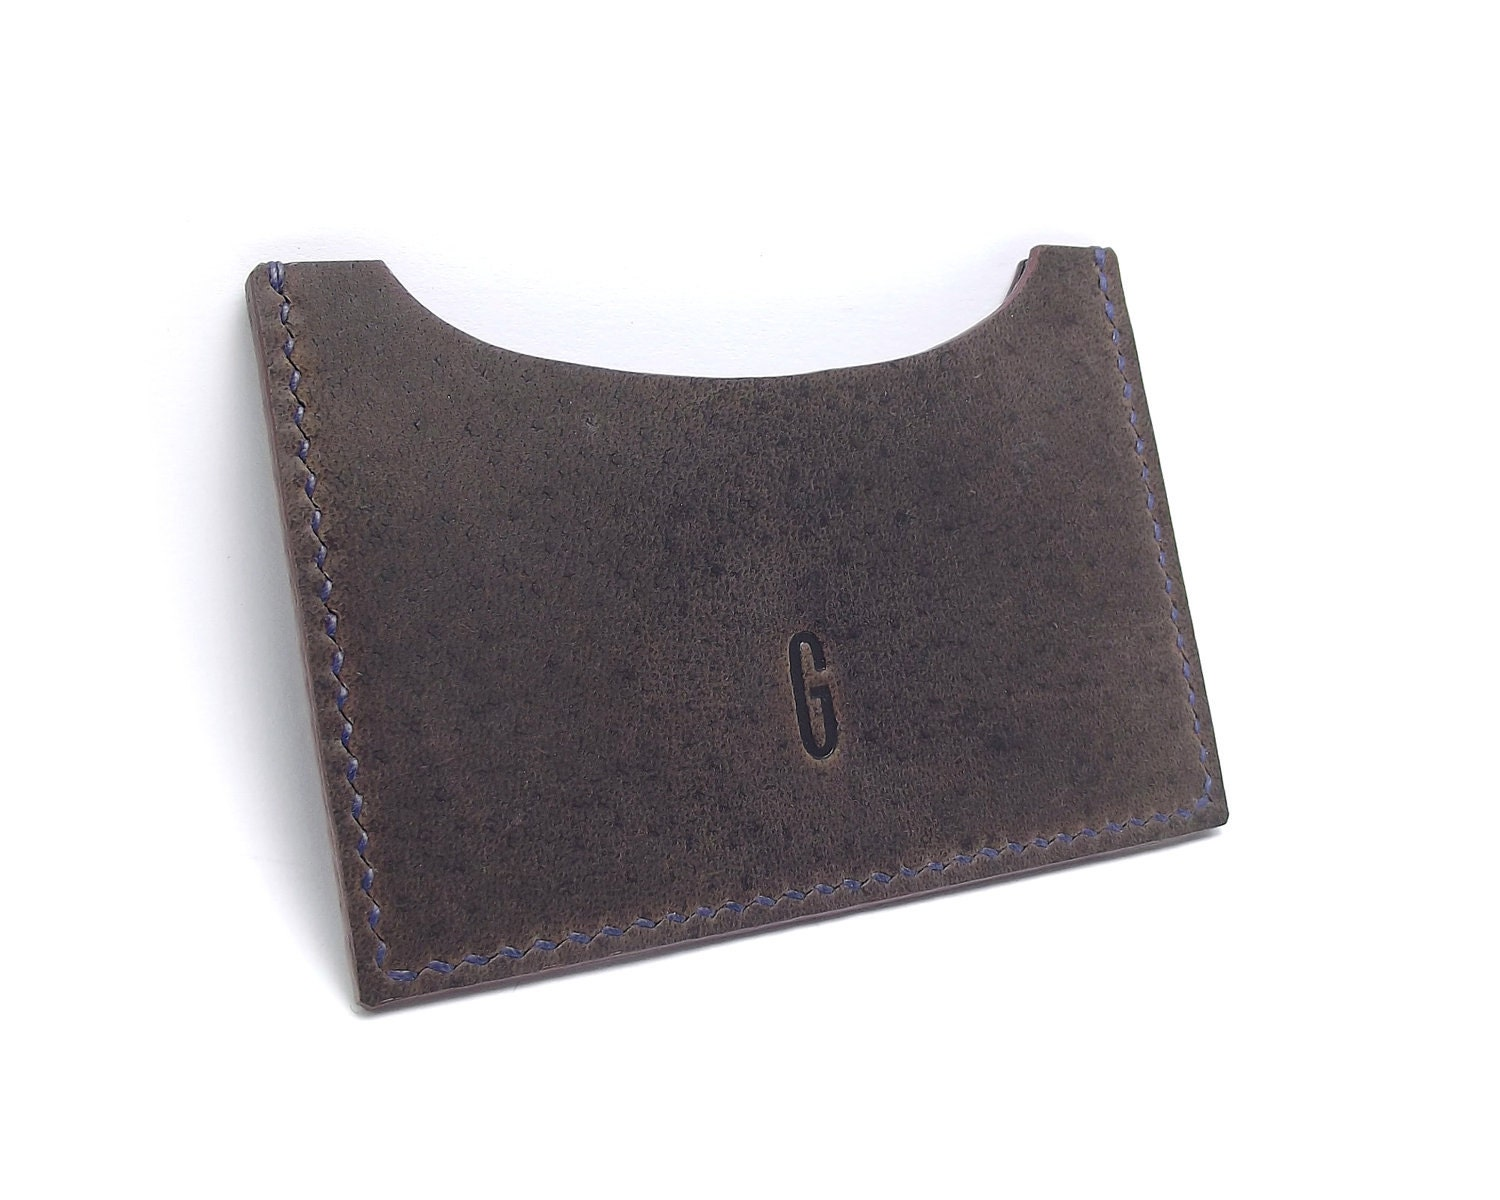 Monogrammed Dark Leather Card Holder, Business Card Case, Travel Wallet for Him, Brown Leather, Crazy Horse, horizontal - sakao